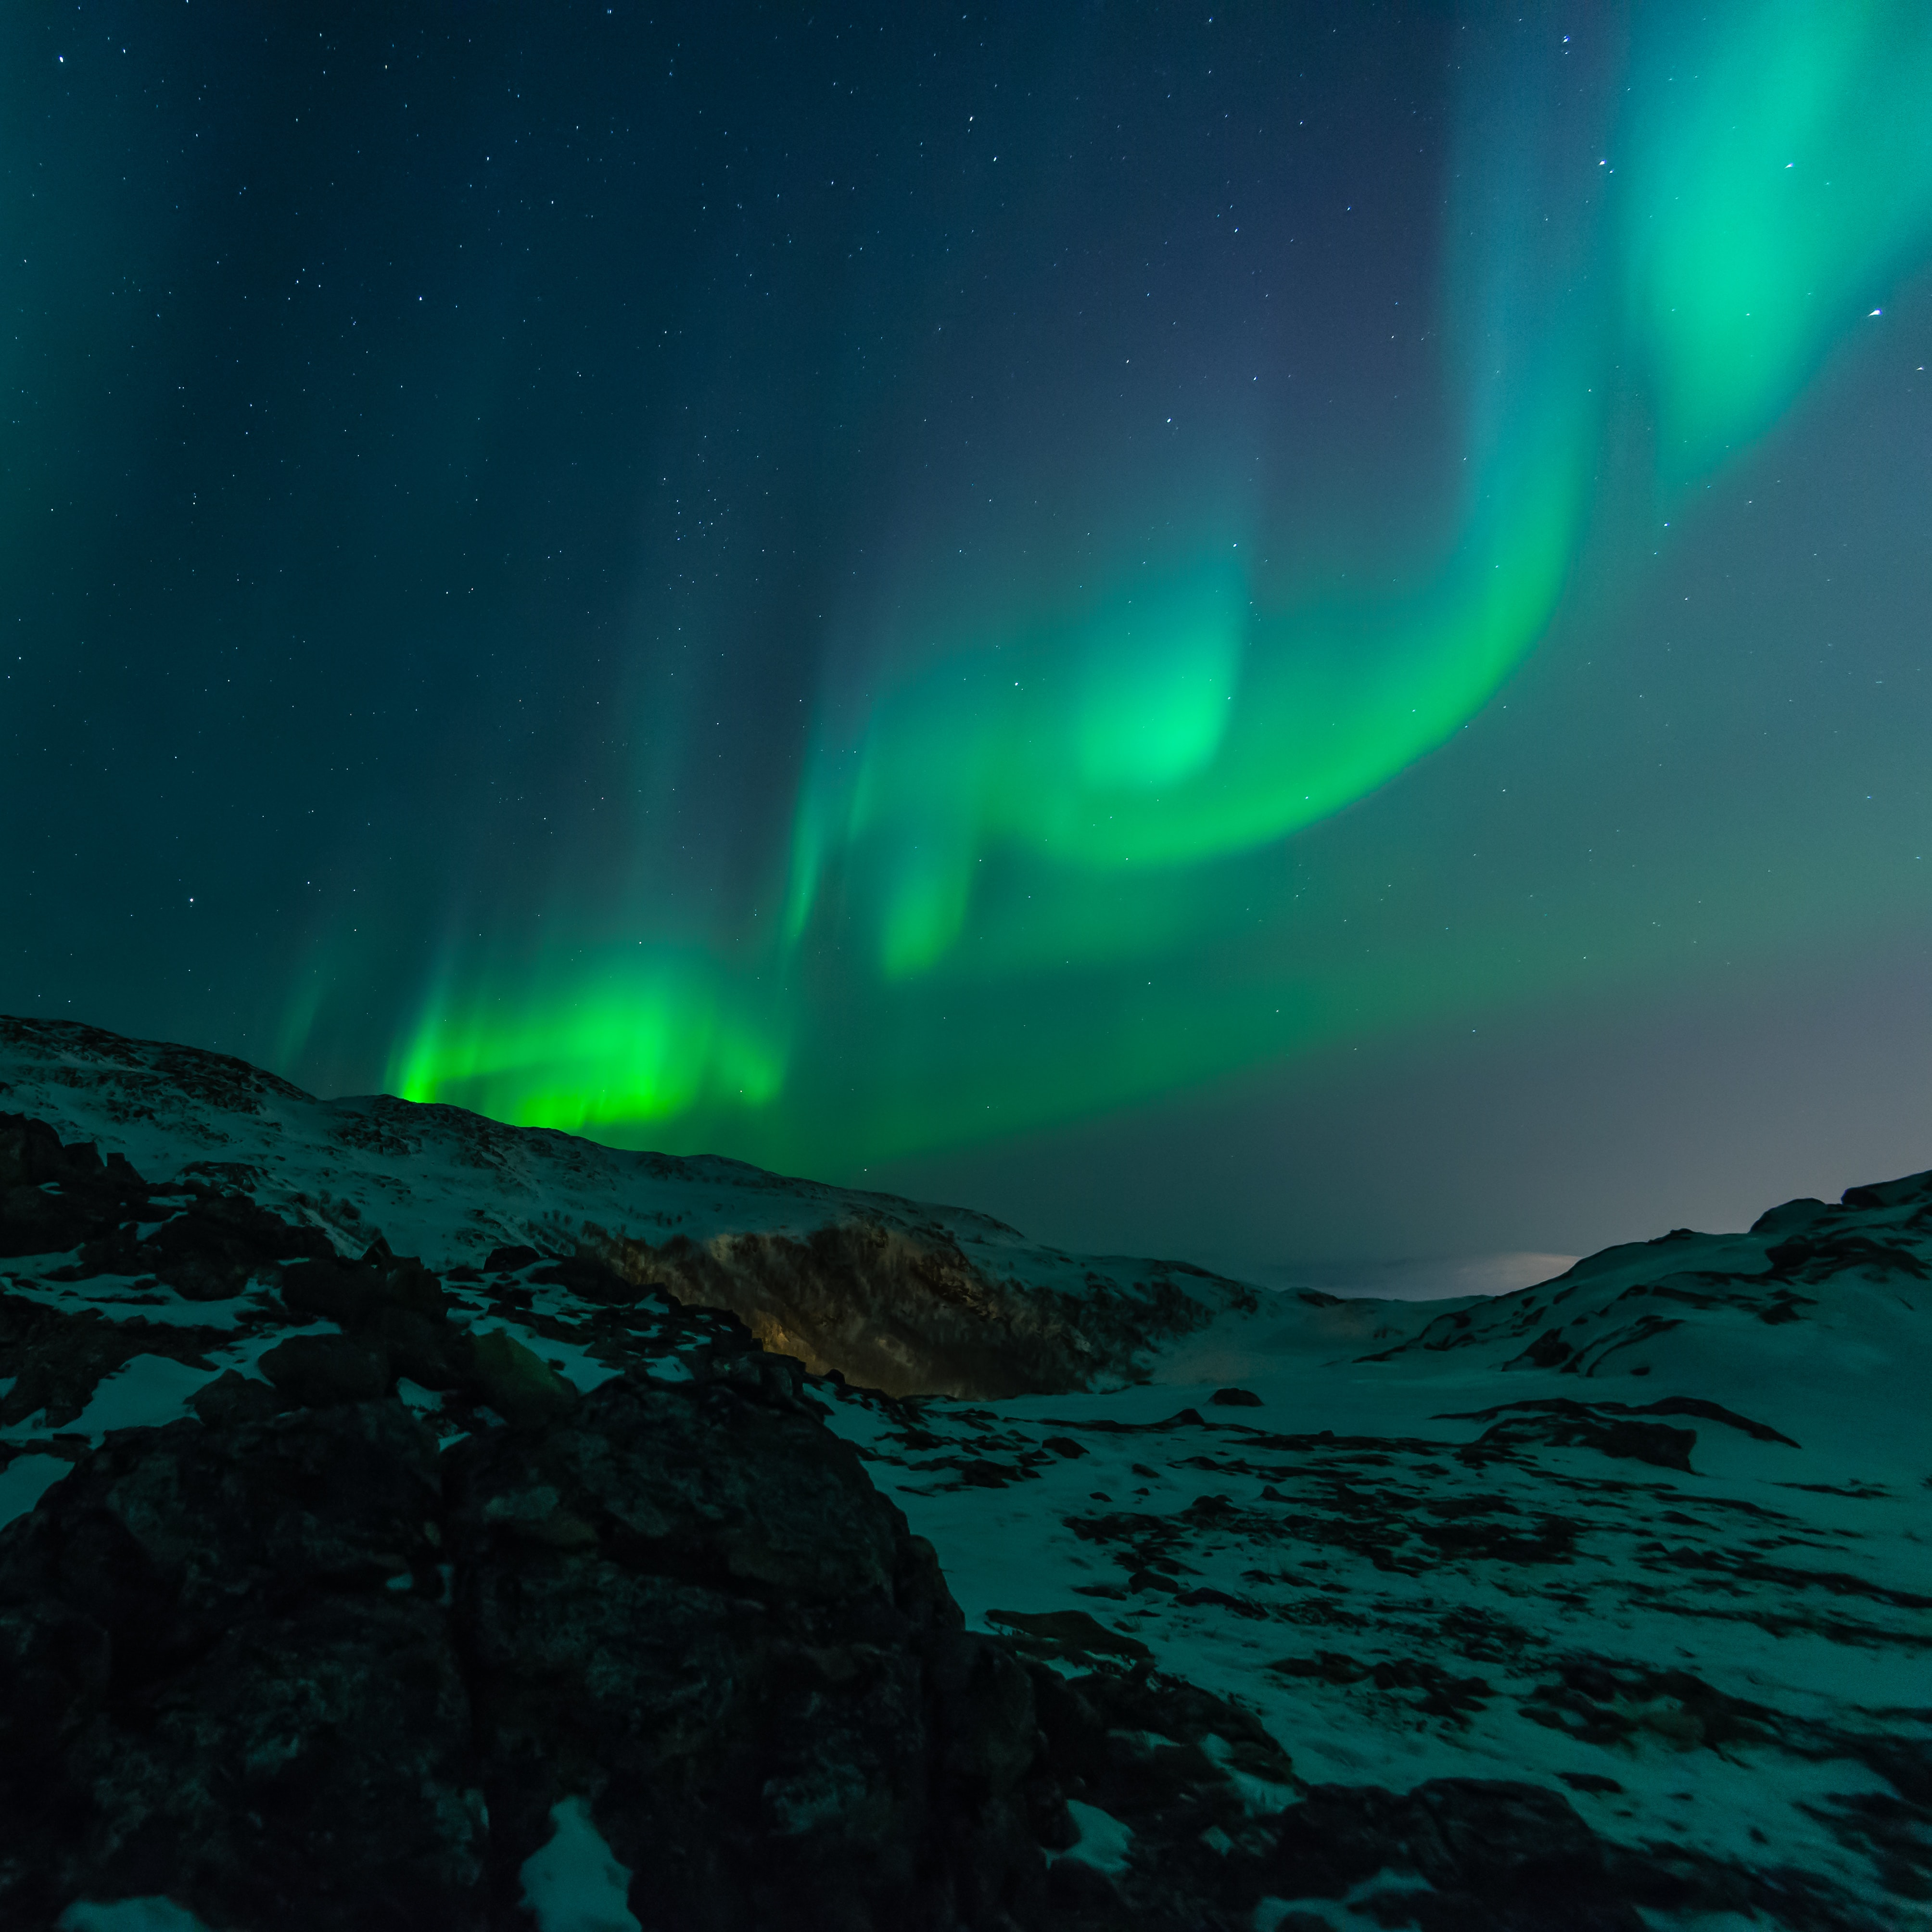 Northern lights during night time